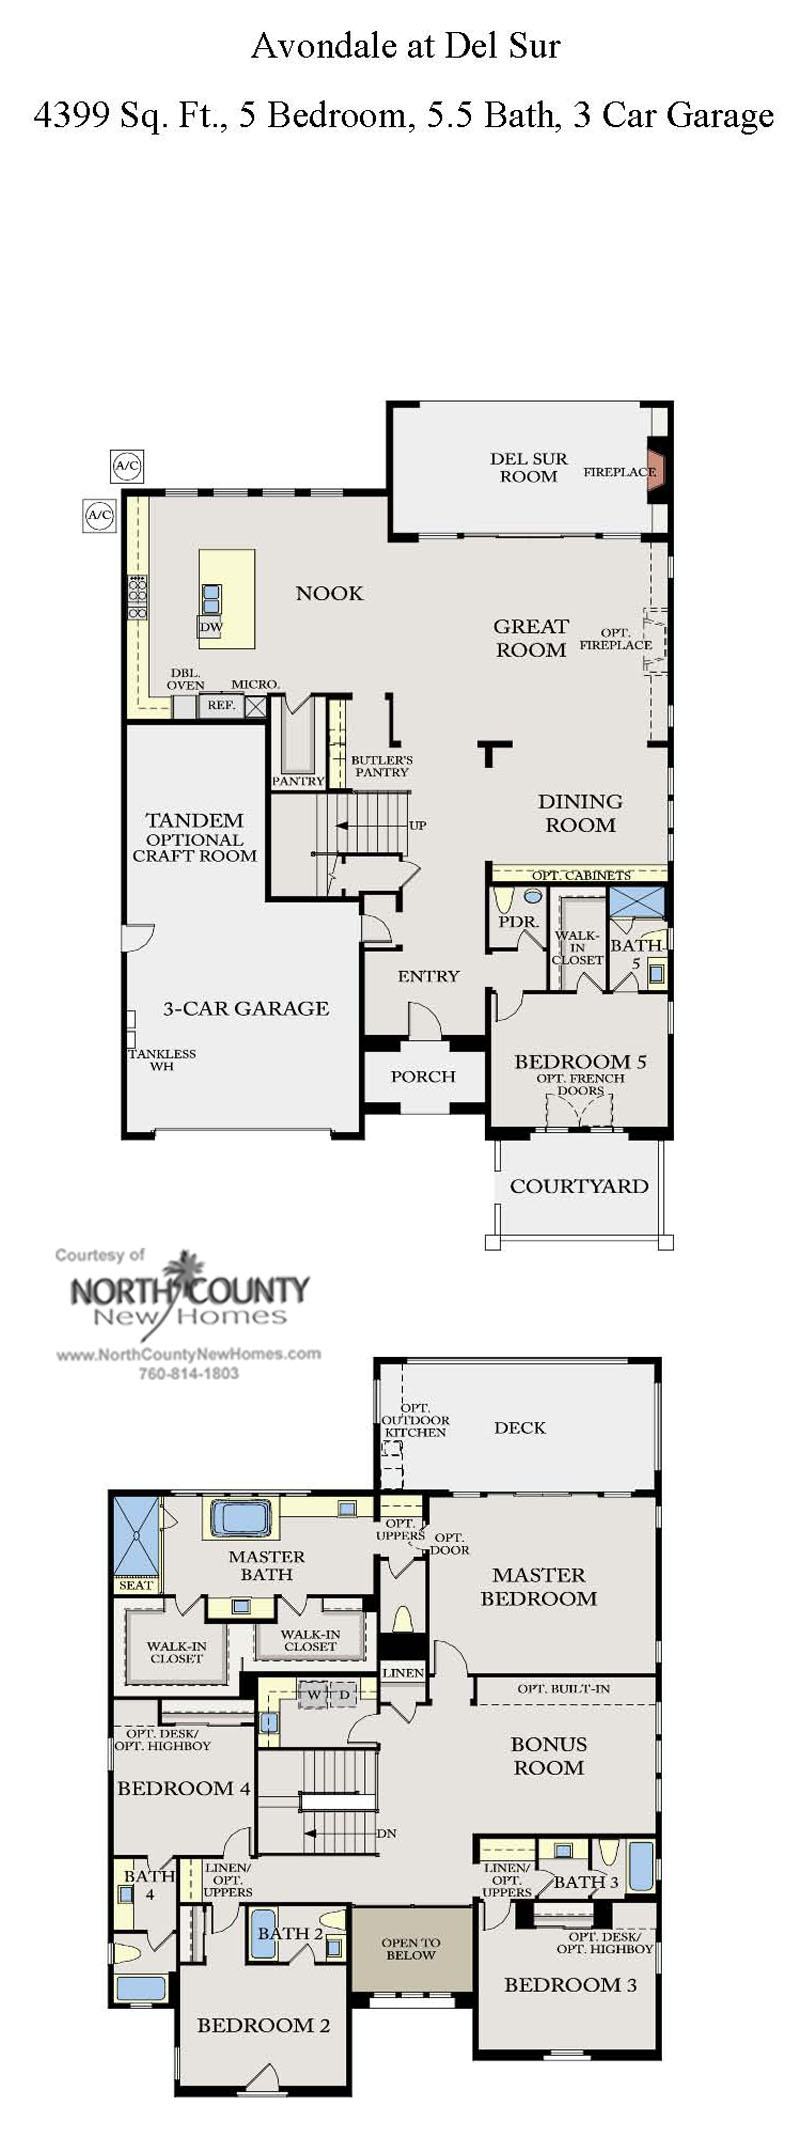 Avondale at del sur floor plans new homes in del sur Avondale house plan